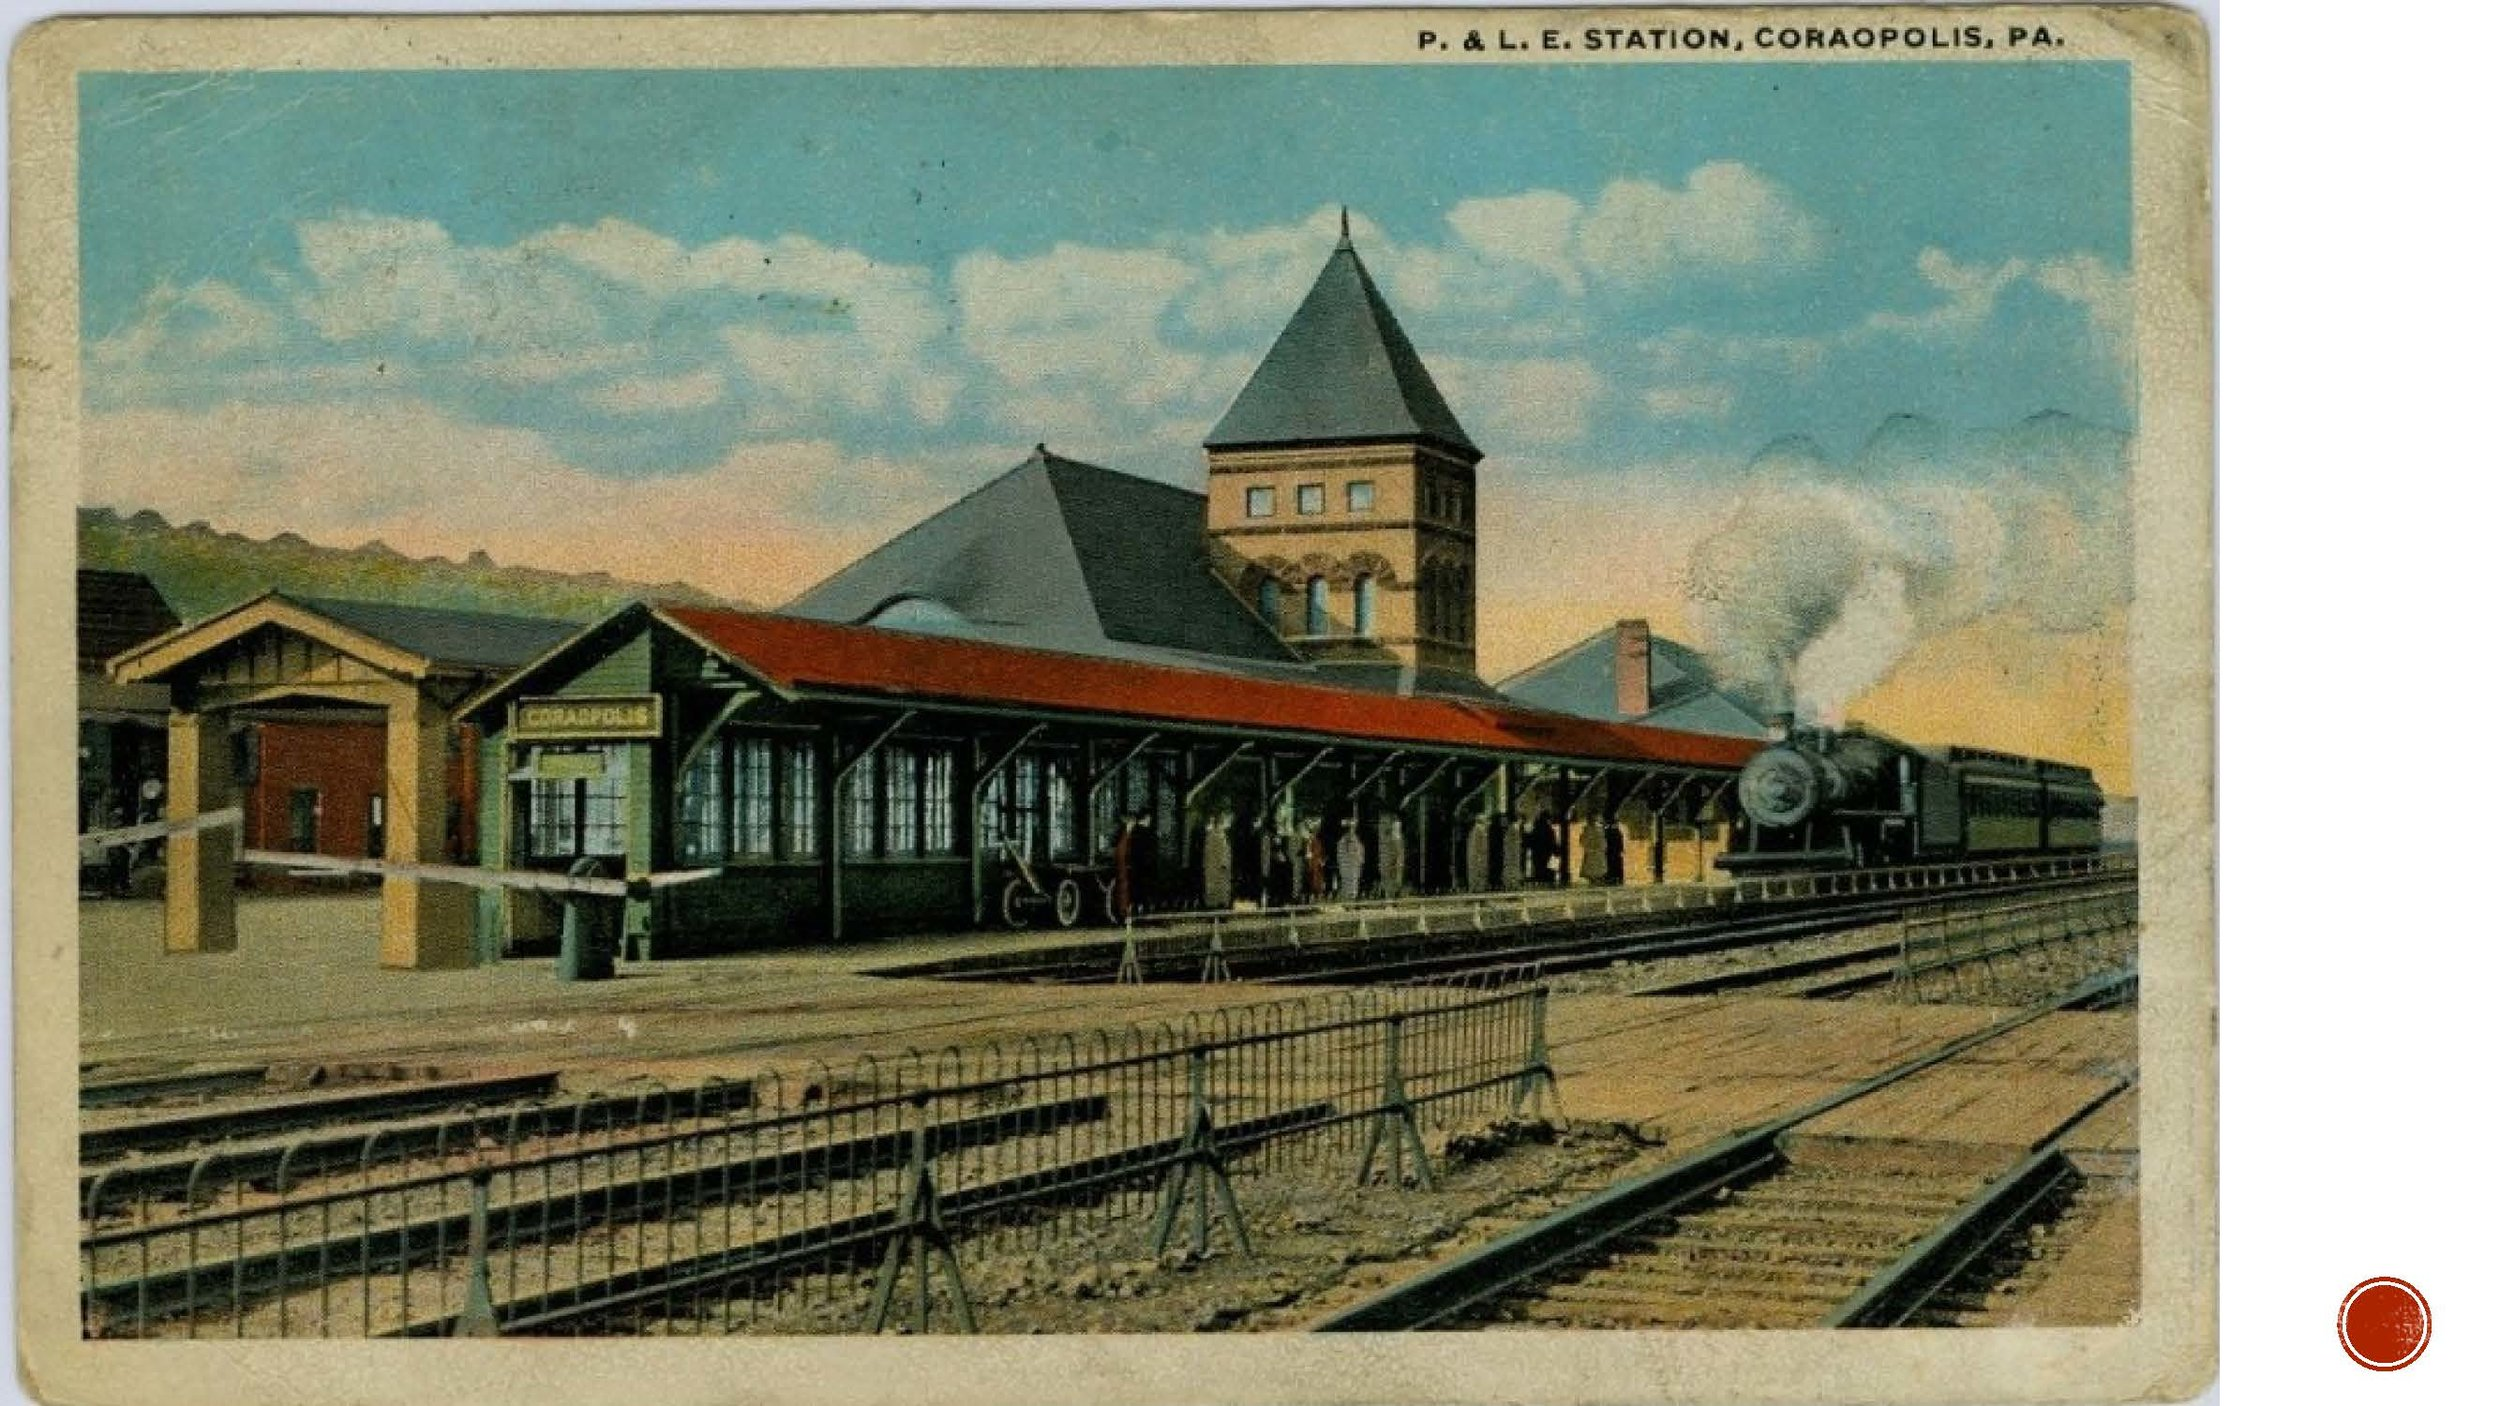 The Coraopolis Station Presentation - History_Page_37.jpg